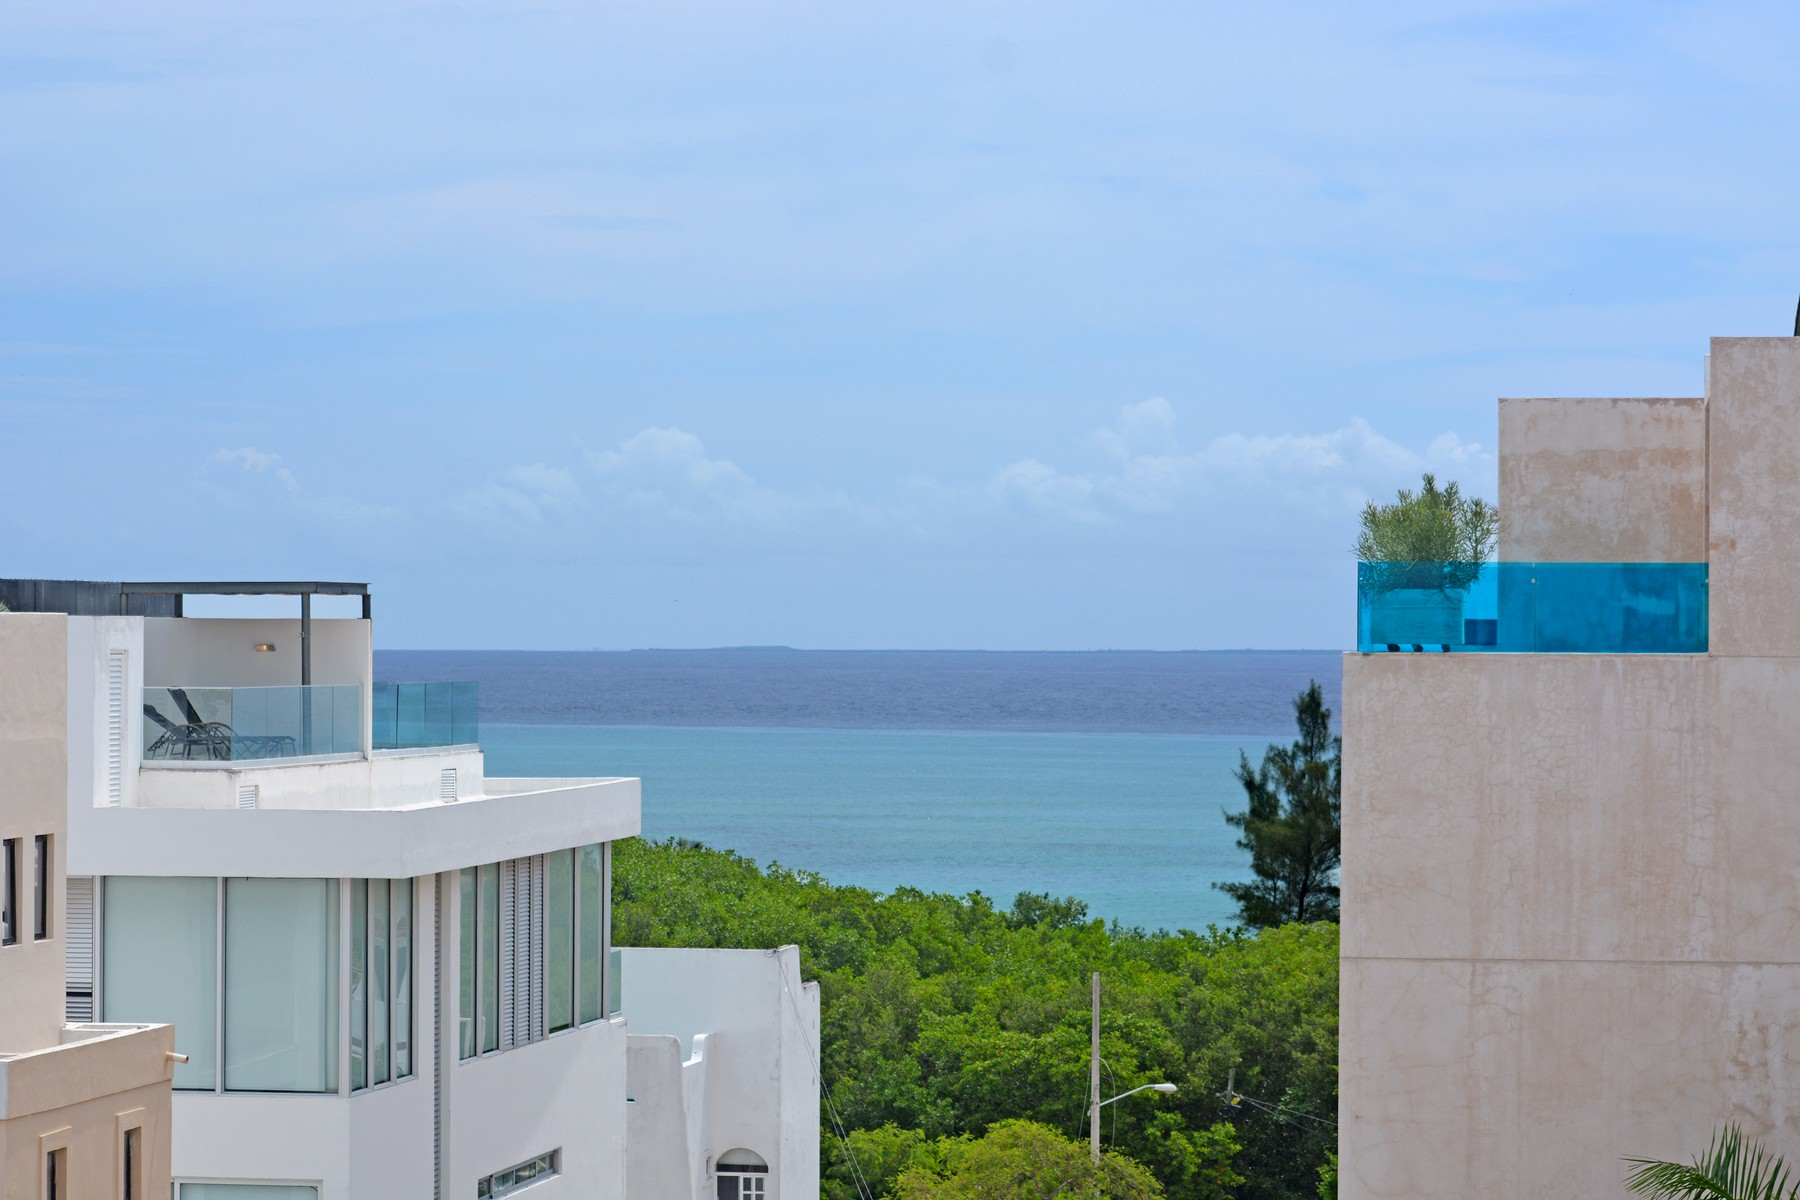 Additional photo for property listing at ESPACIOSO 3 RECÁMARAS A 2 PASOS DE LA PLAYA Gorgeous large 3 bedroom 2 steps from the beach Lot 006, 1st. North Avenue, Mza. 157, between 40th & 42th North streets Playa Del Carmen, Quintana Roo 77710 México